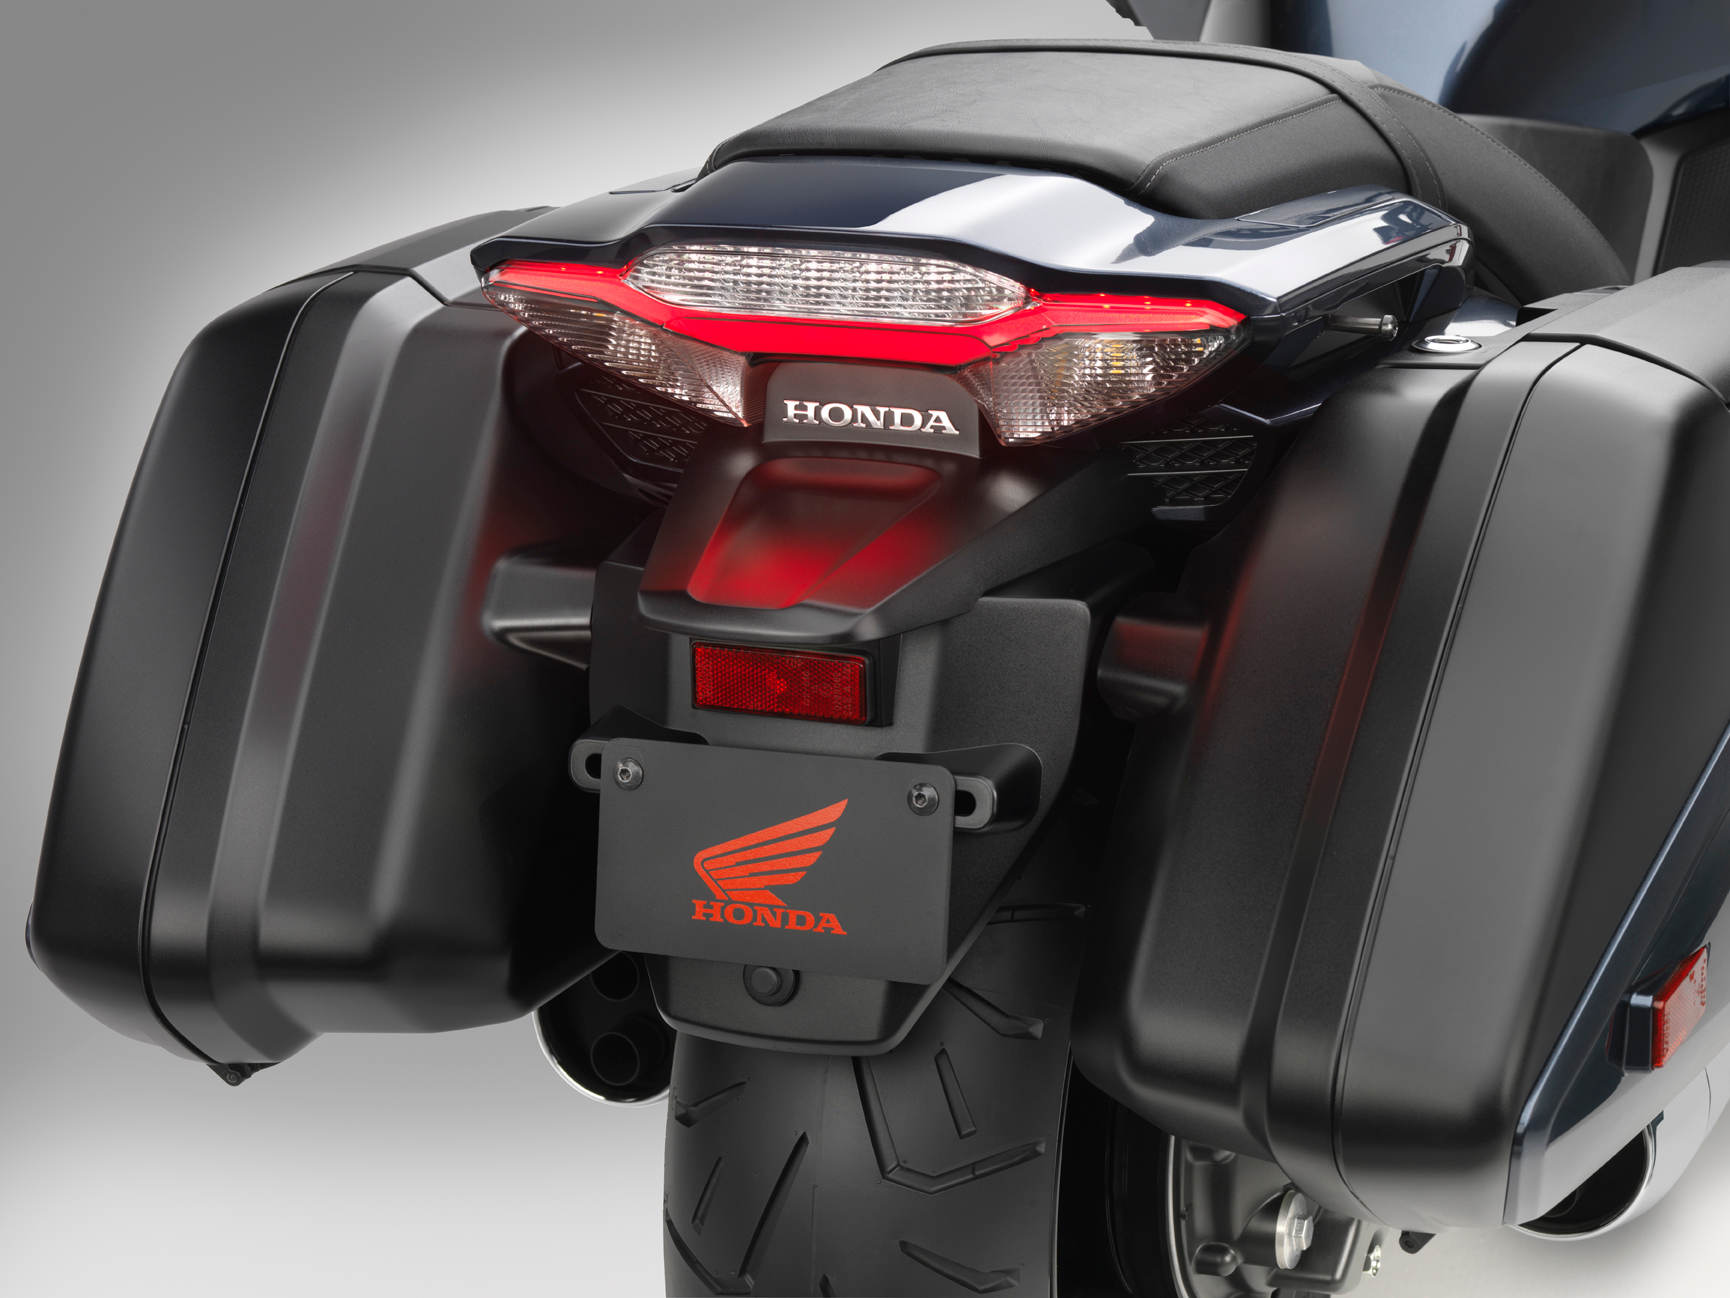 Honda Announces 2014 Ctx1300 And Ctx1300 Deluxe The Ctx Family